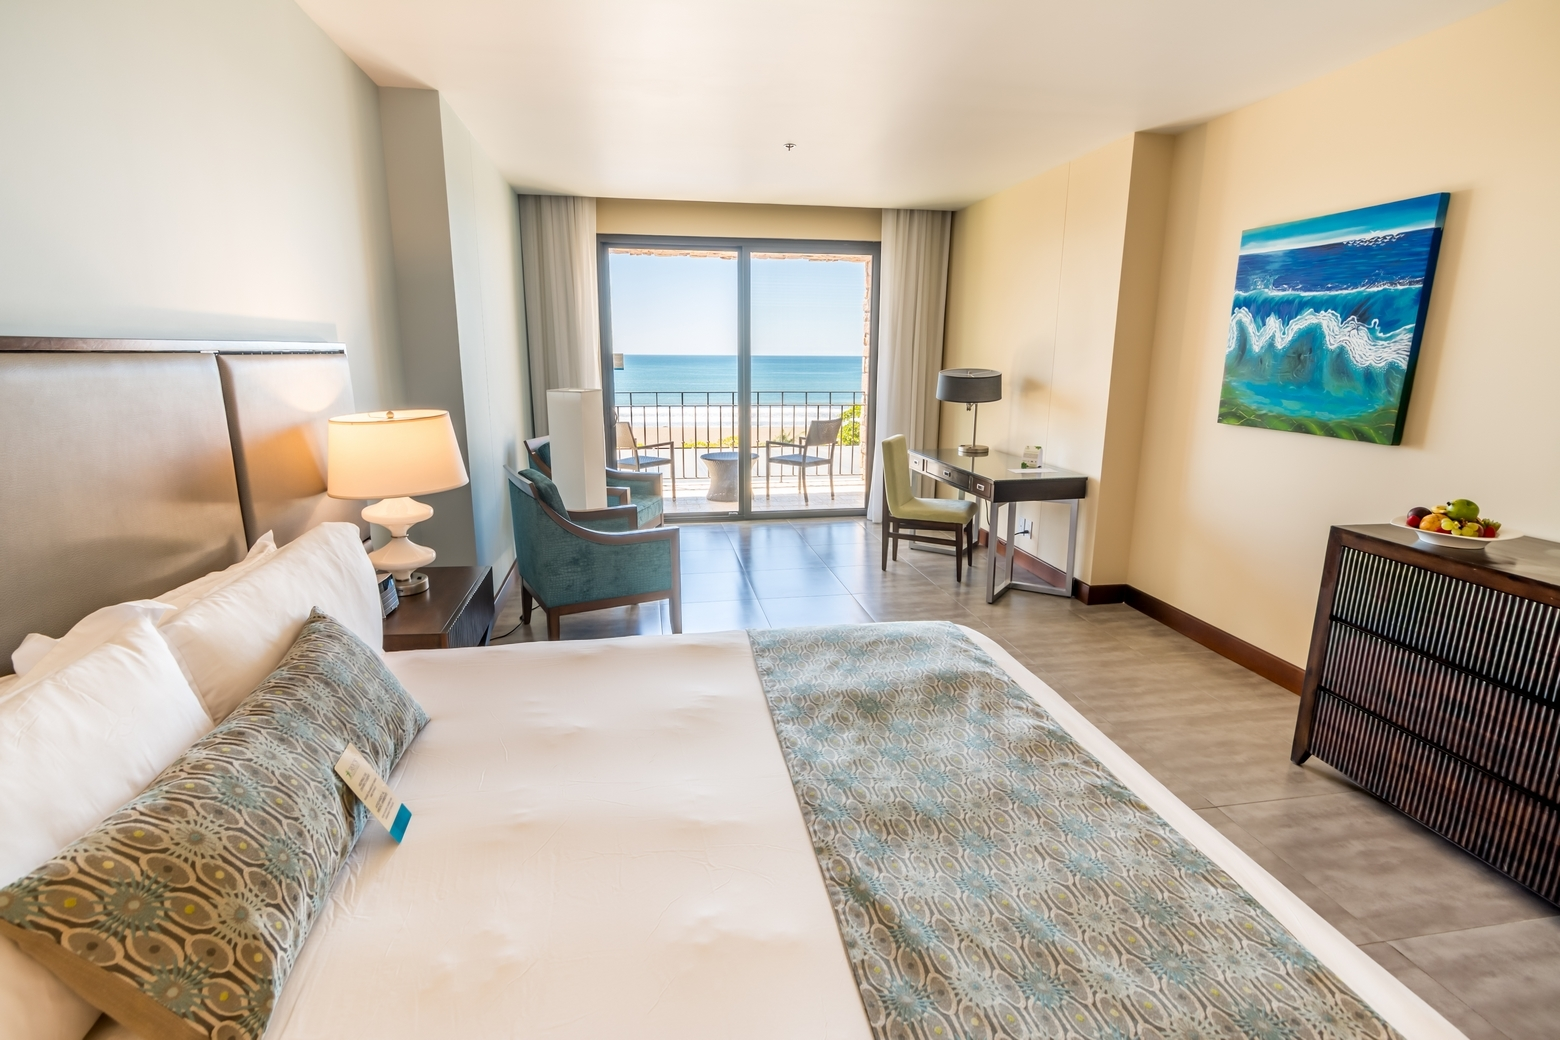 Deluxe Room Ocean View King Bed with Balcony